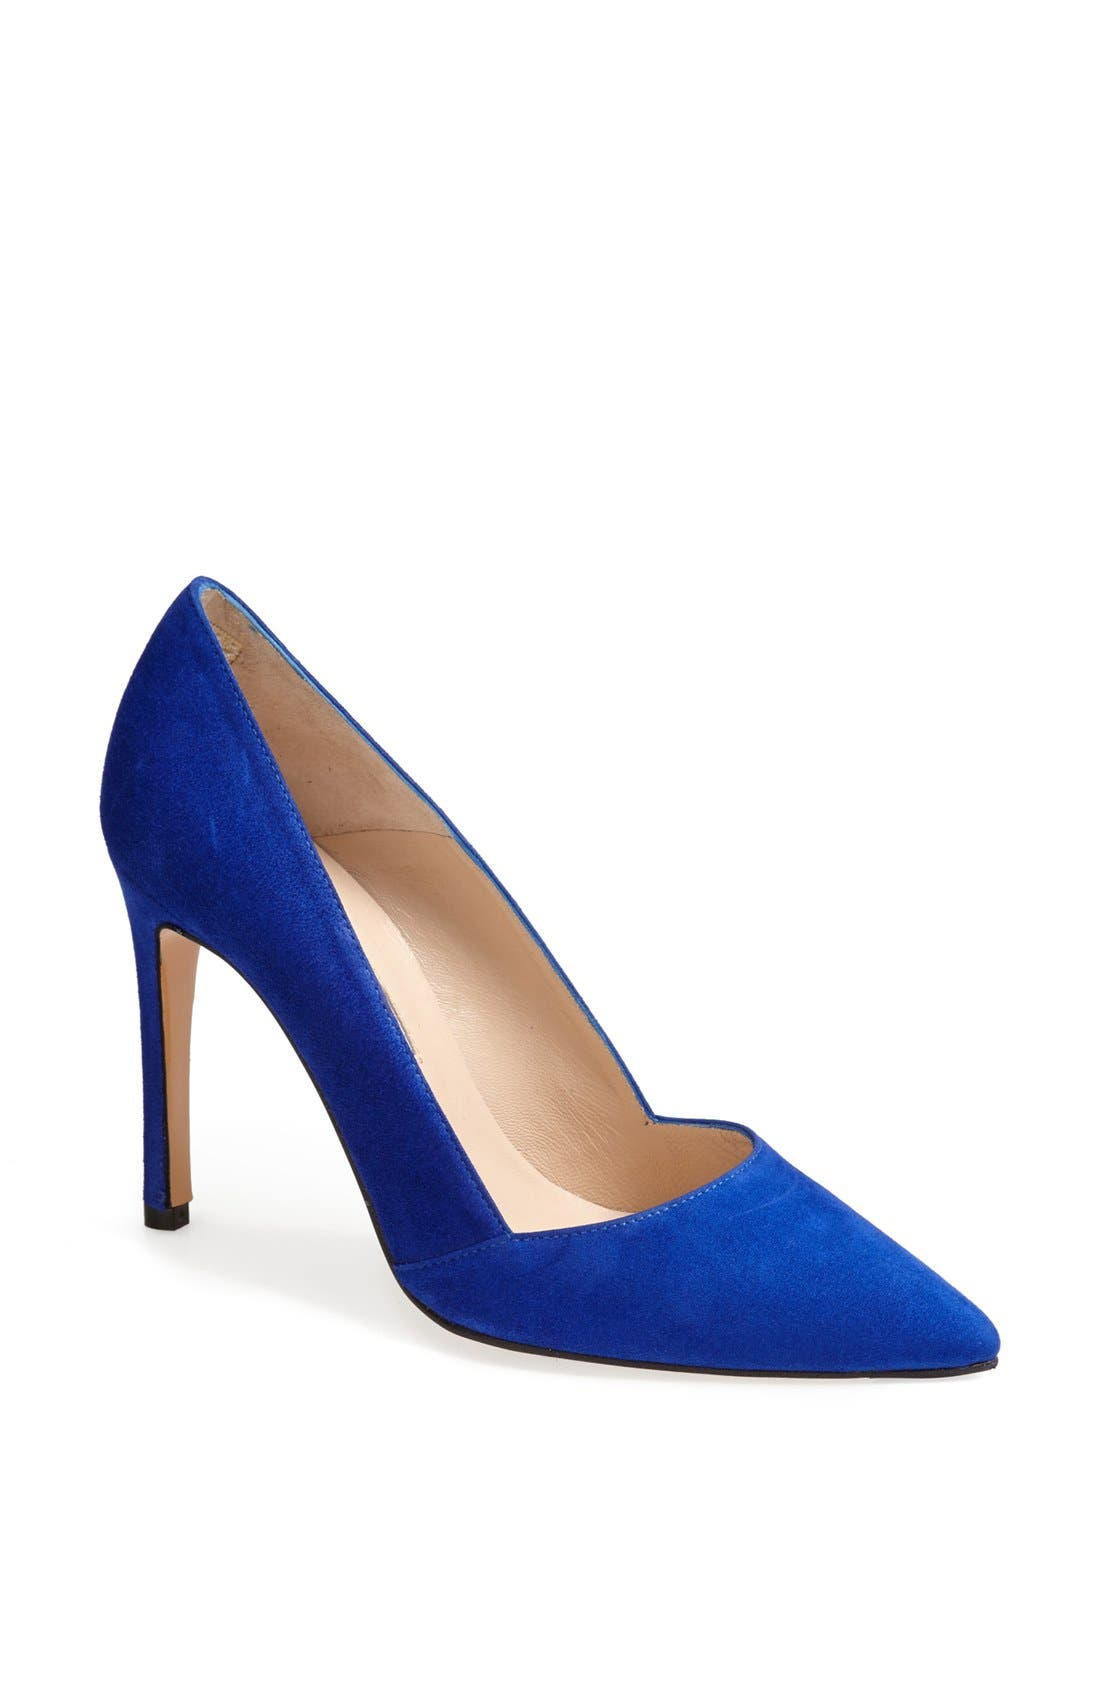 Alternate Image 1 Selected - Charles David 'Passion' Pointy Toe Pump